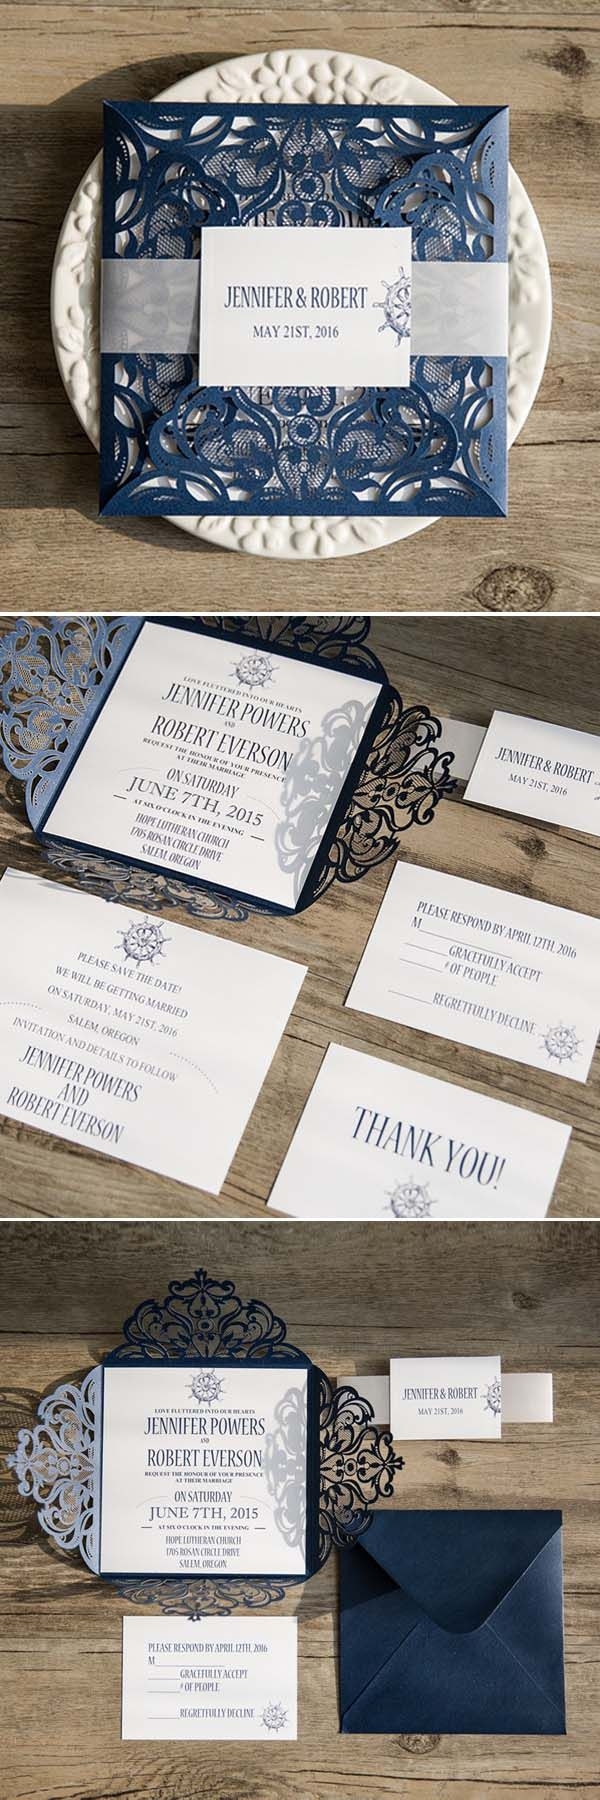 Best 132 Casamento Images On Pinterest Card Crafts Cards Diy And